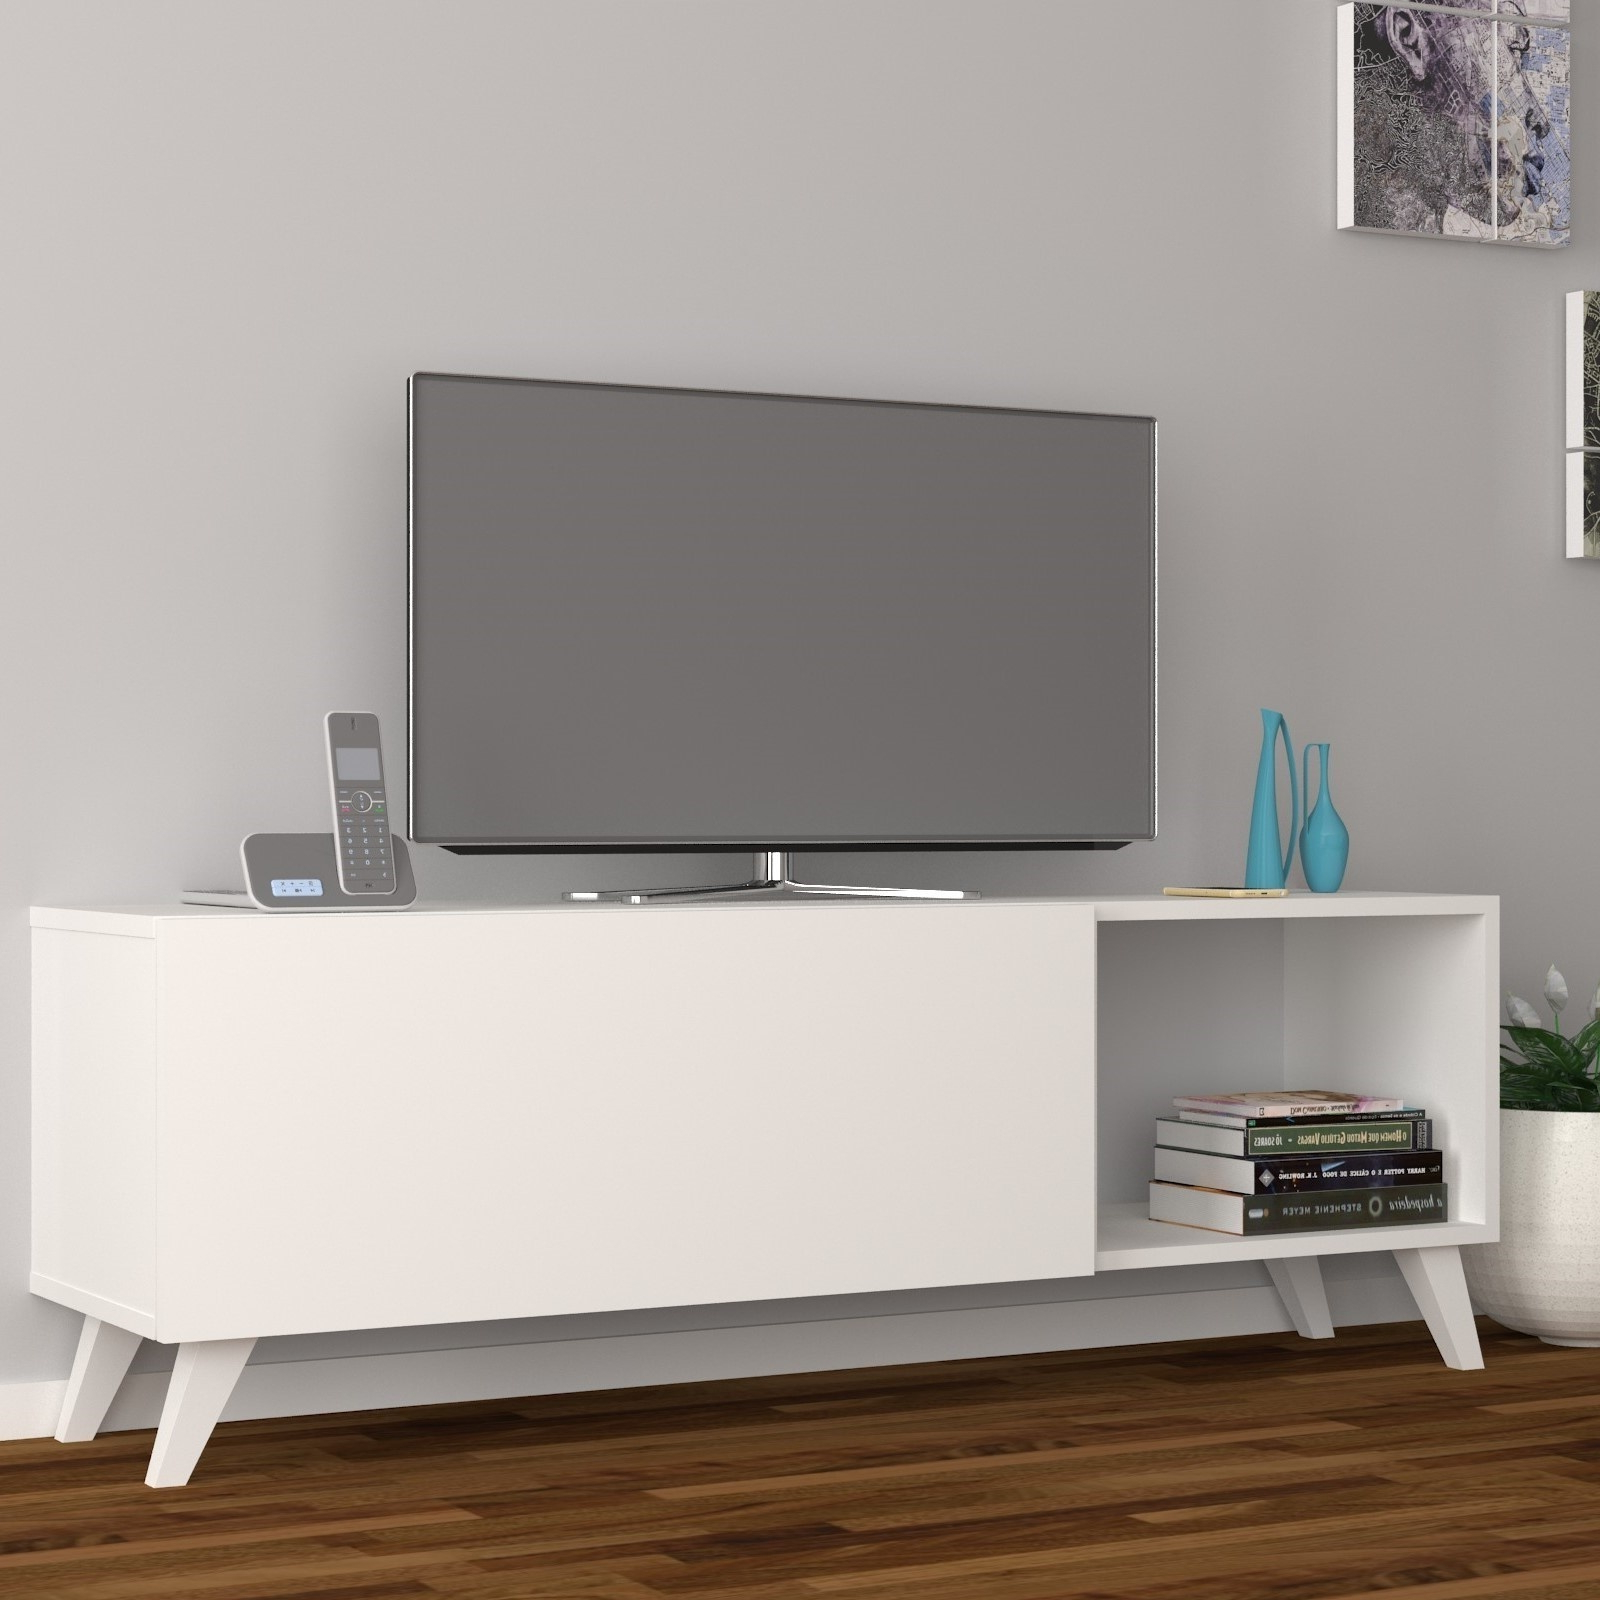 Dmodül Smart Tv Sehpası | Yukko Regarding Ducar 64 Inch Tv Stands (View 5 of 20)